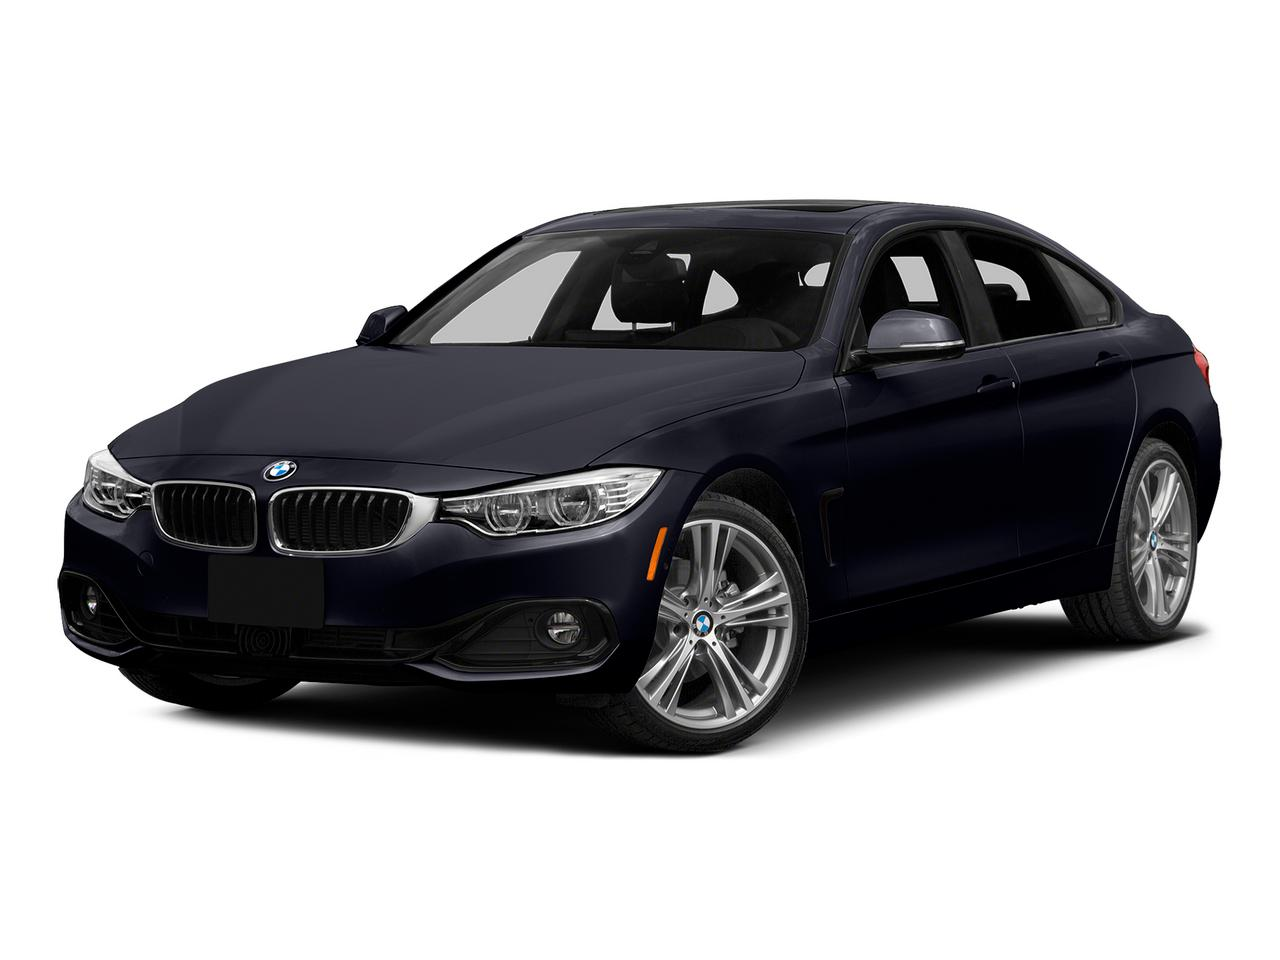 2015 BMW 428i xDrive Vehicle Photo in Trevose, PA 19053-4984